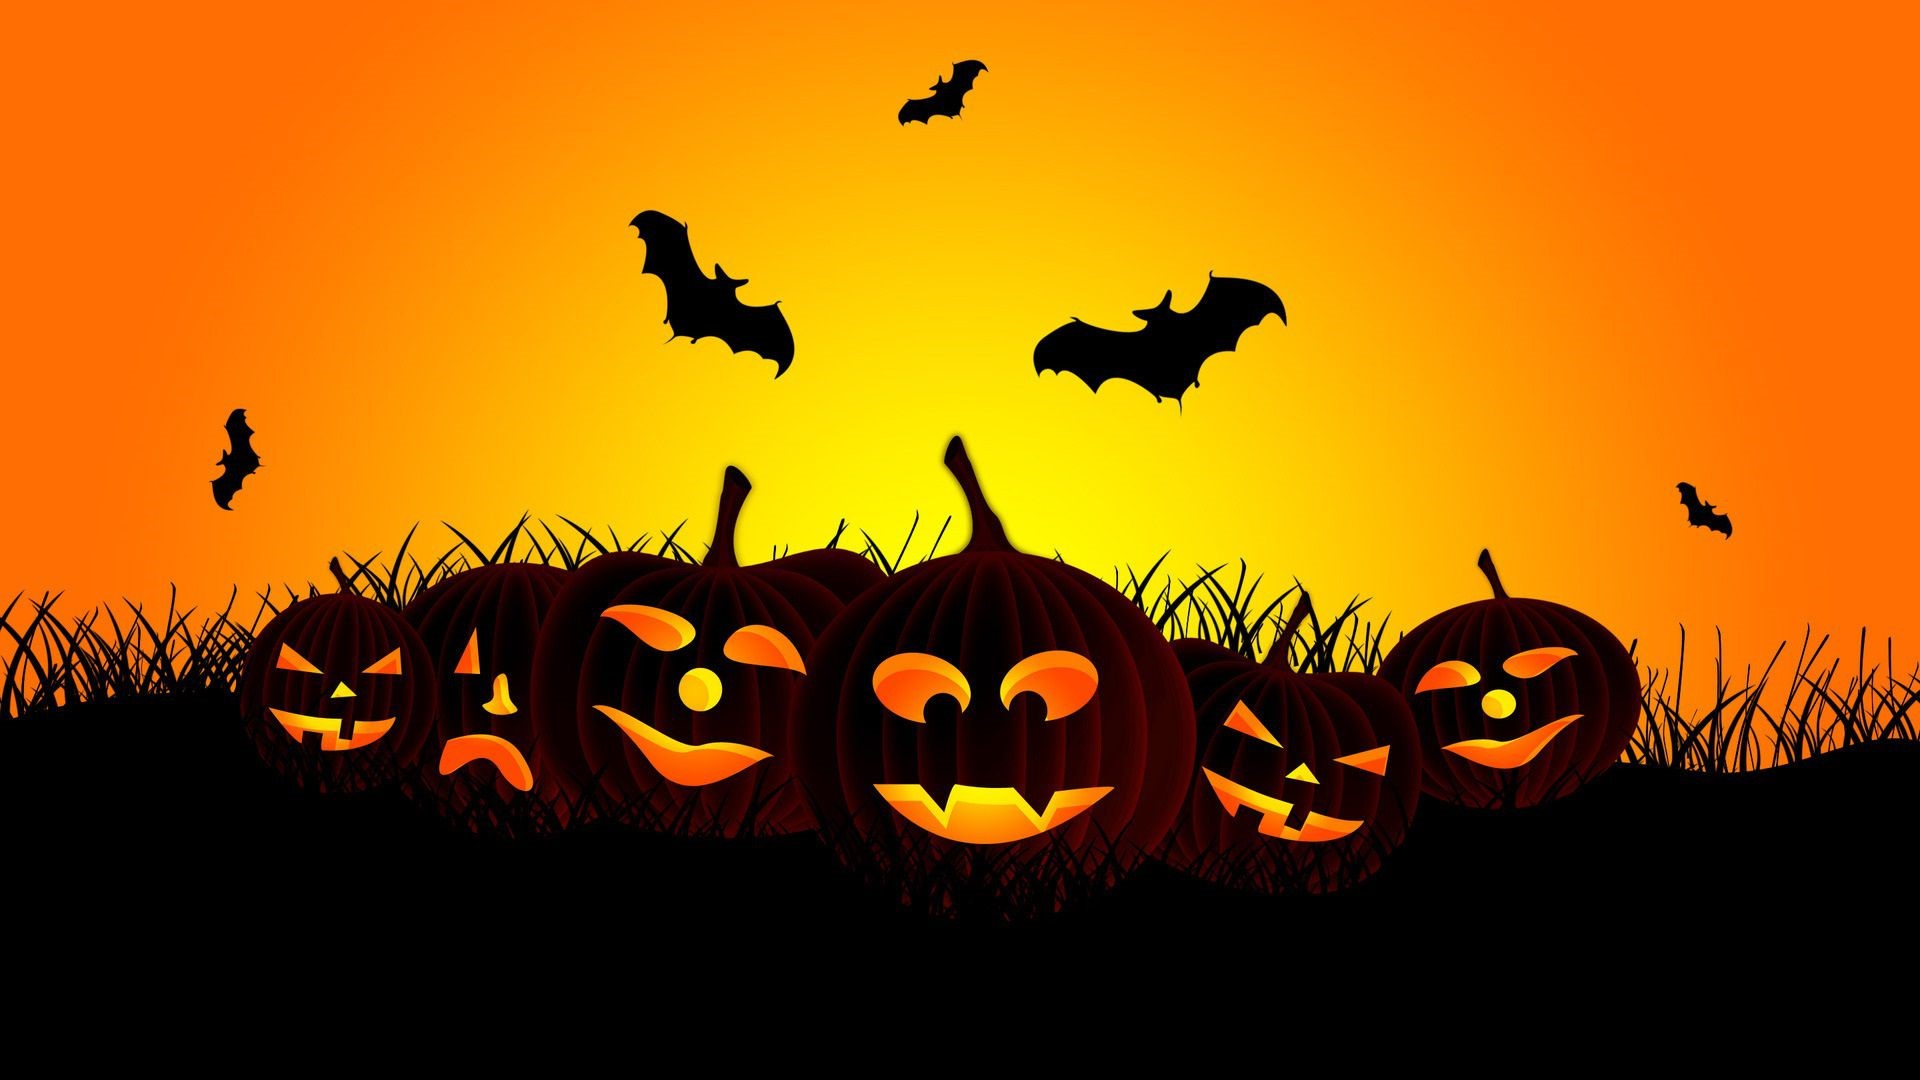 Halloween Cartoon Pumpkins HD Wallpaper